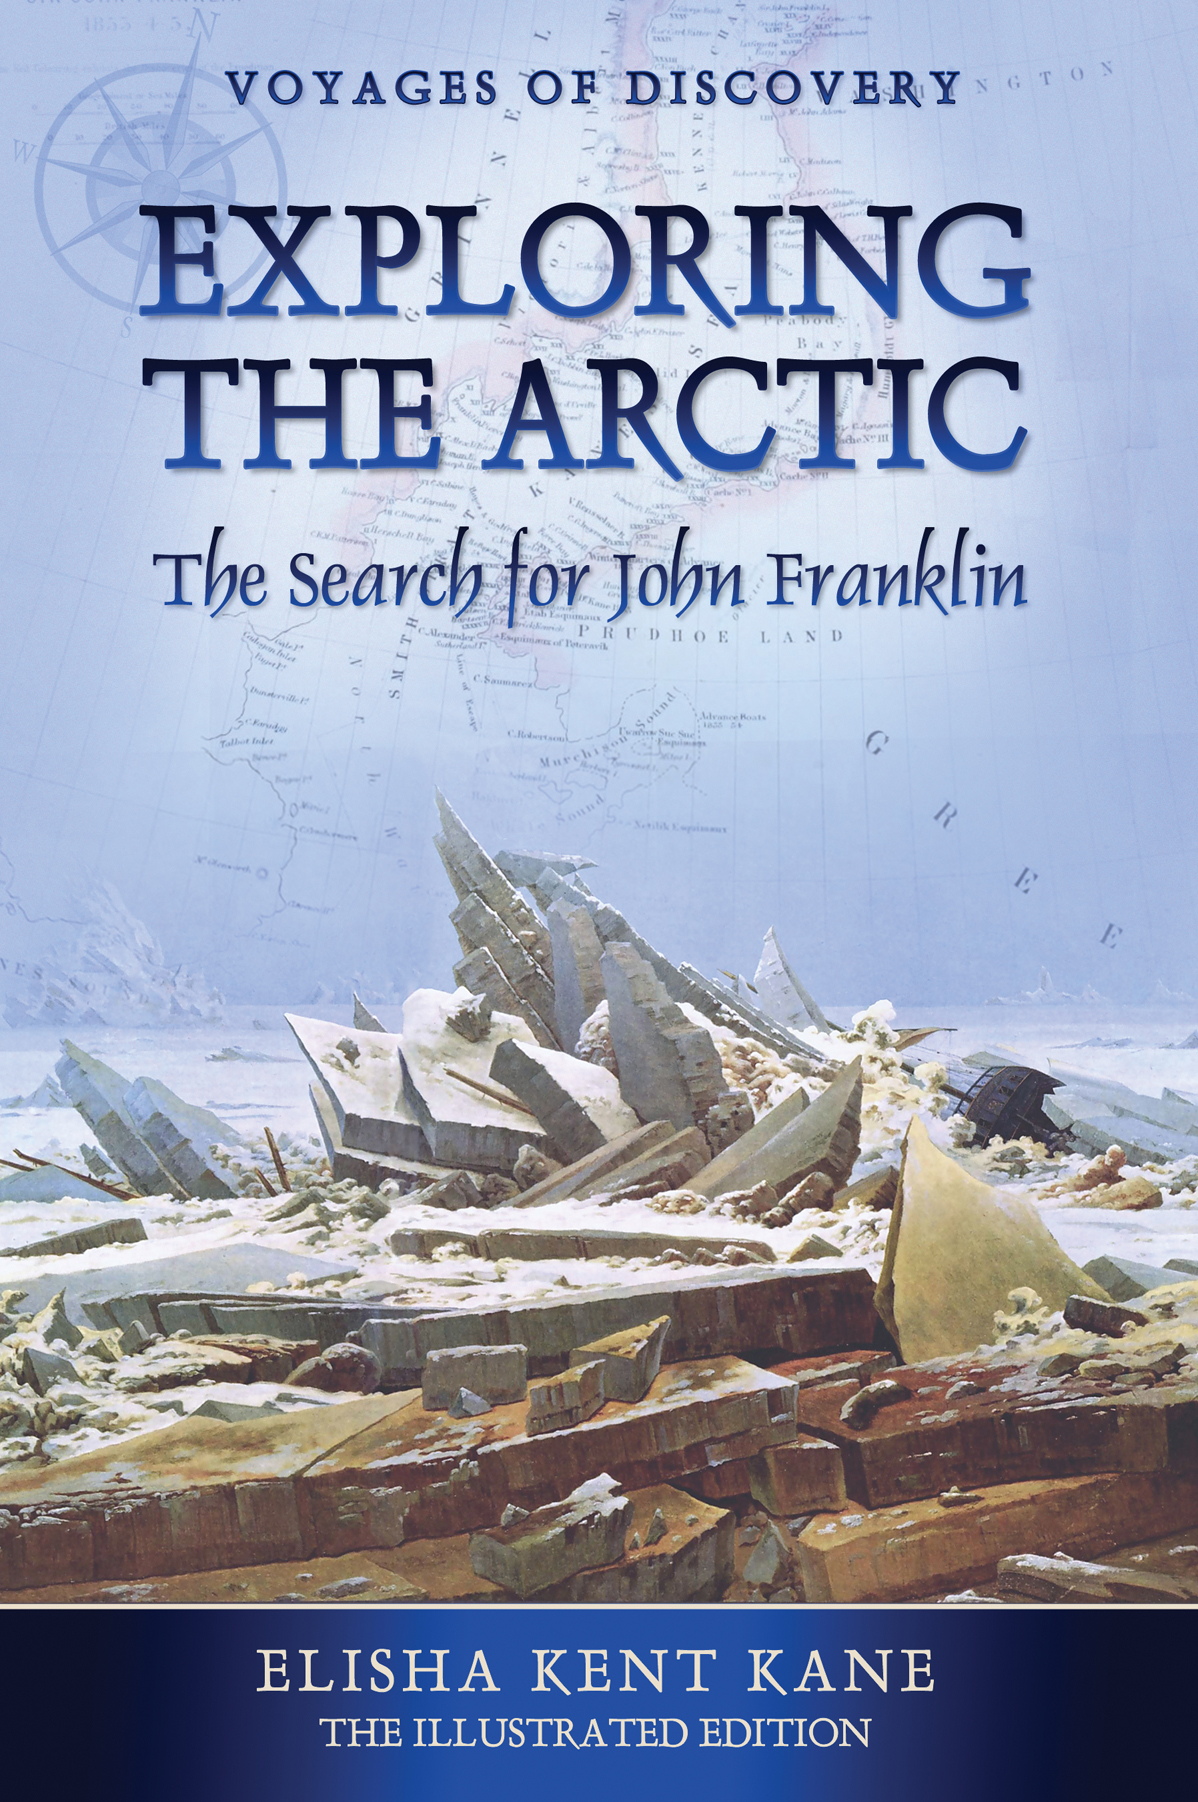 Exploring the Arctic - The Search for John Franklin